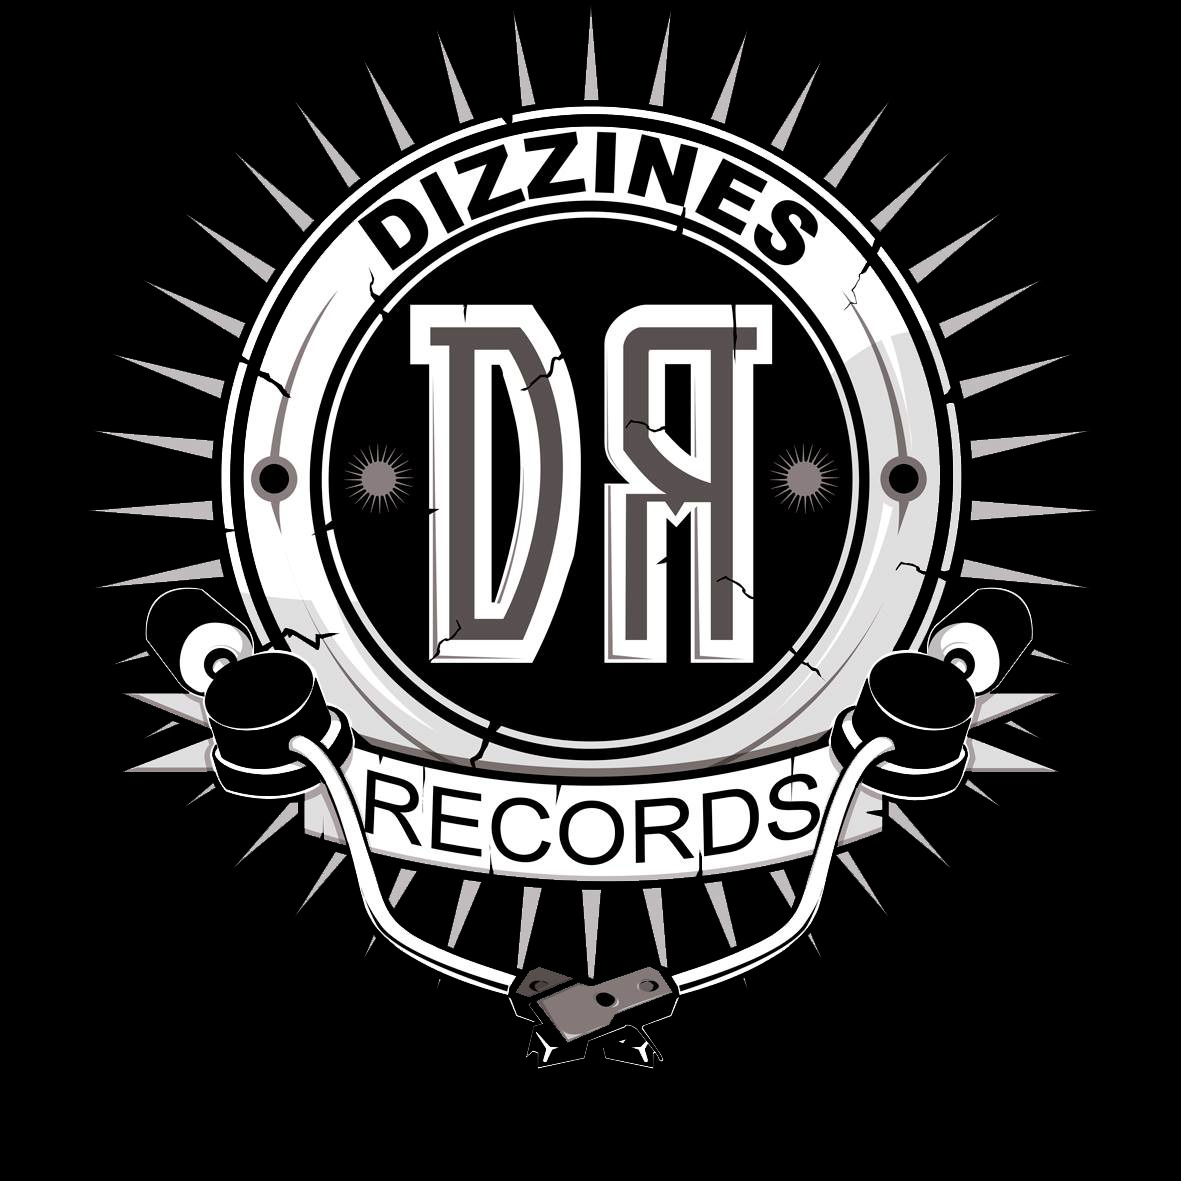 Dizzines Records Breakbeat Music 2020